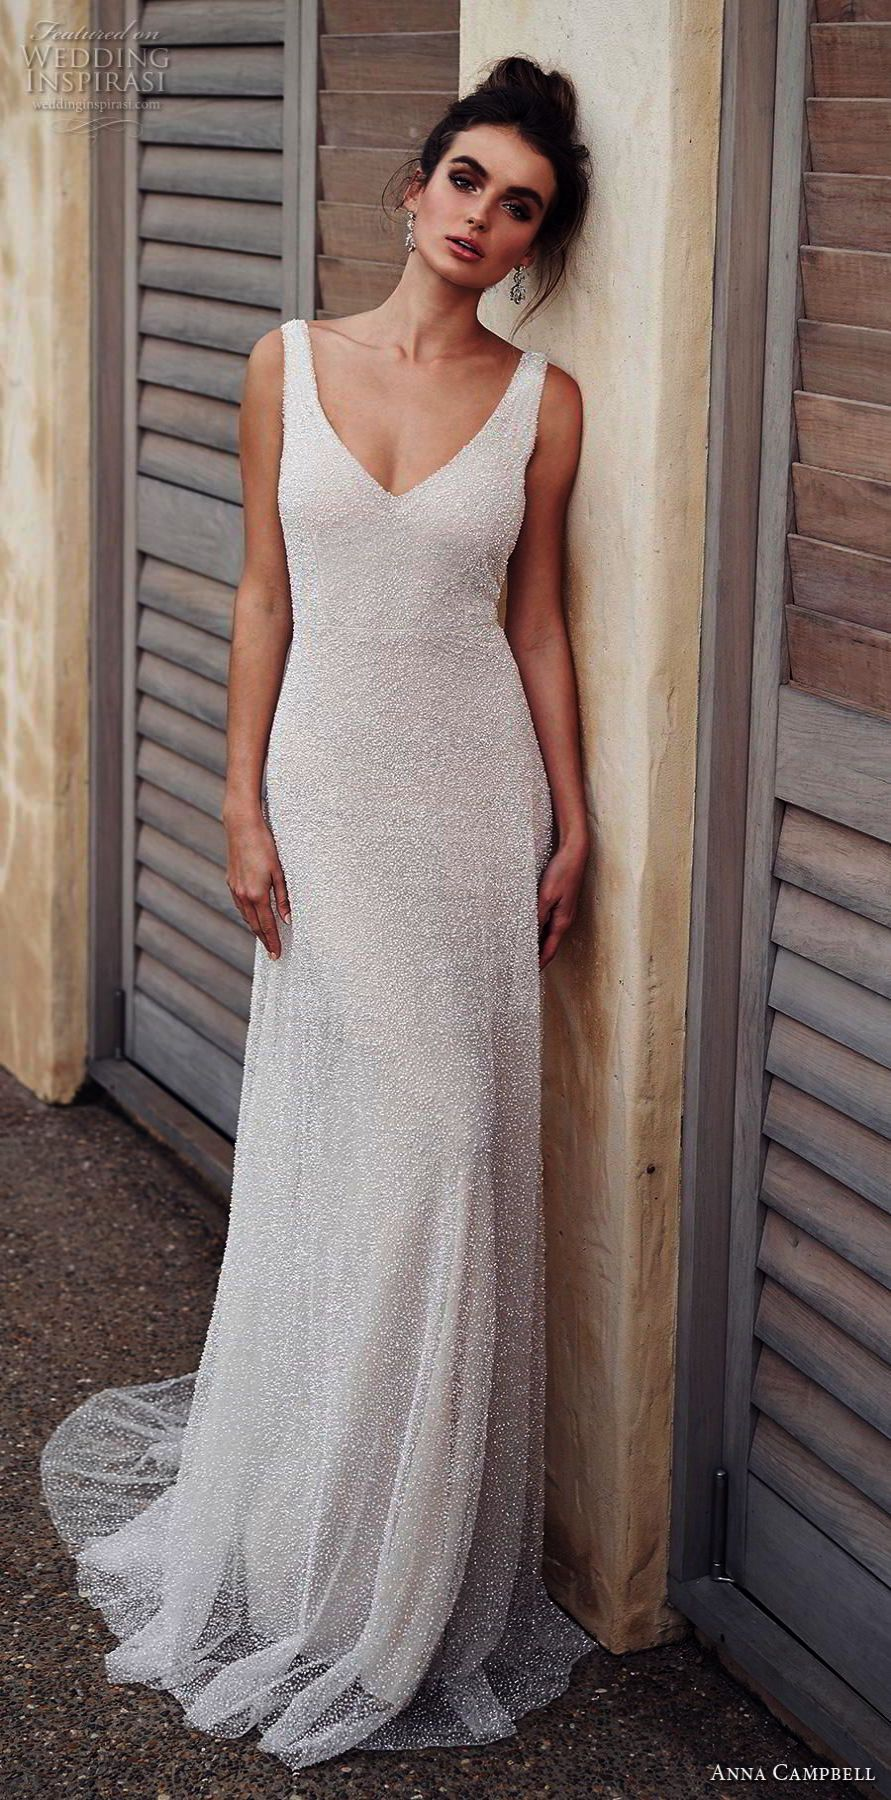 Wedding Venues Near Fort Worth Weddingwire Galway Beyond Plus Size Party Dresses For We Anna Campbell Wedding Dress Aline Wedding Dress Trendy Wedding Dresses [ 1800 x 891 Pixel ]